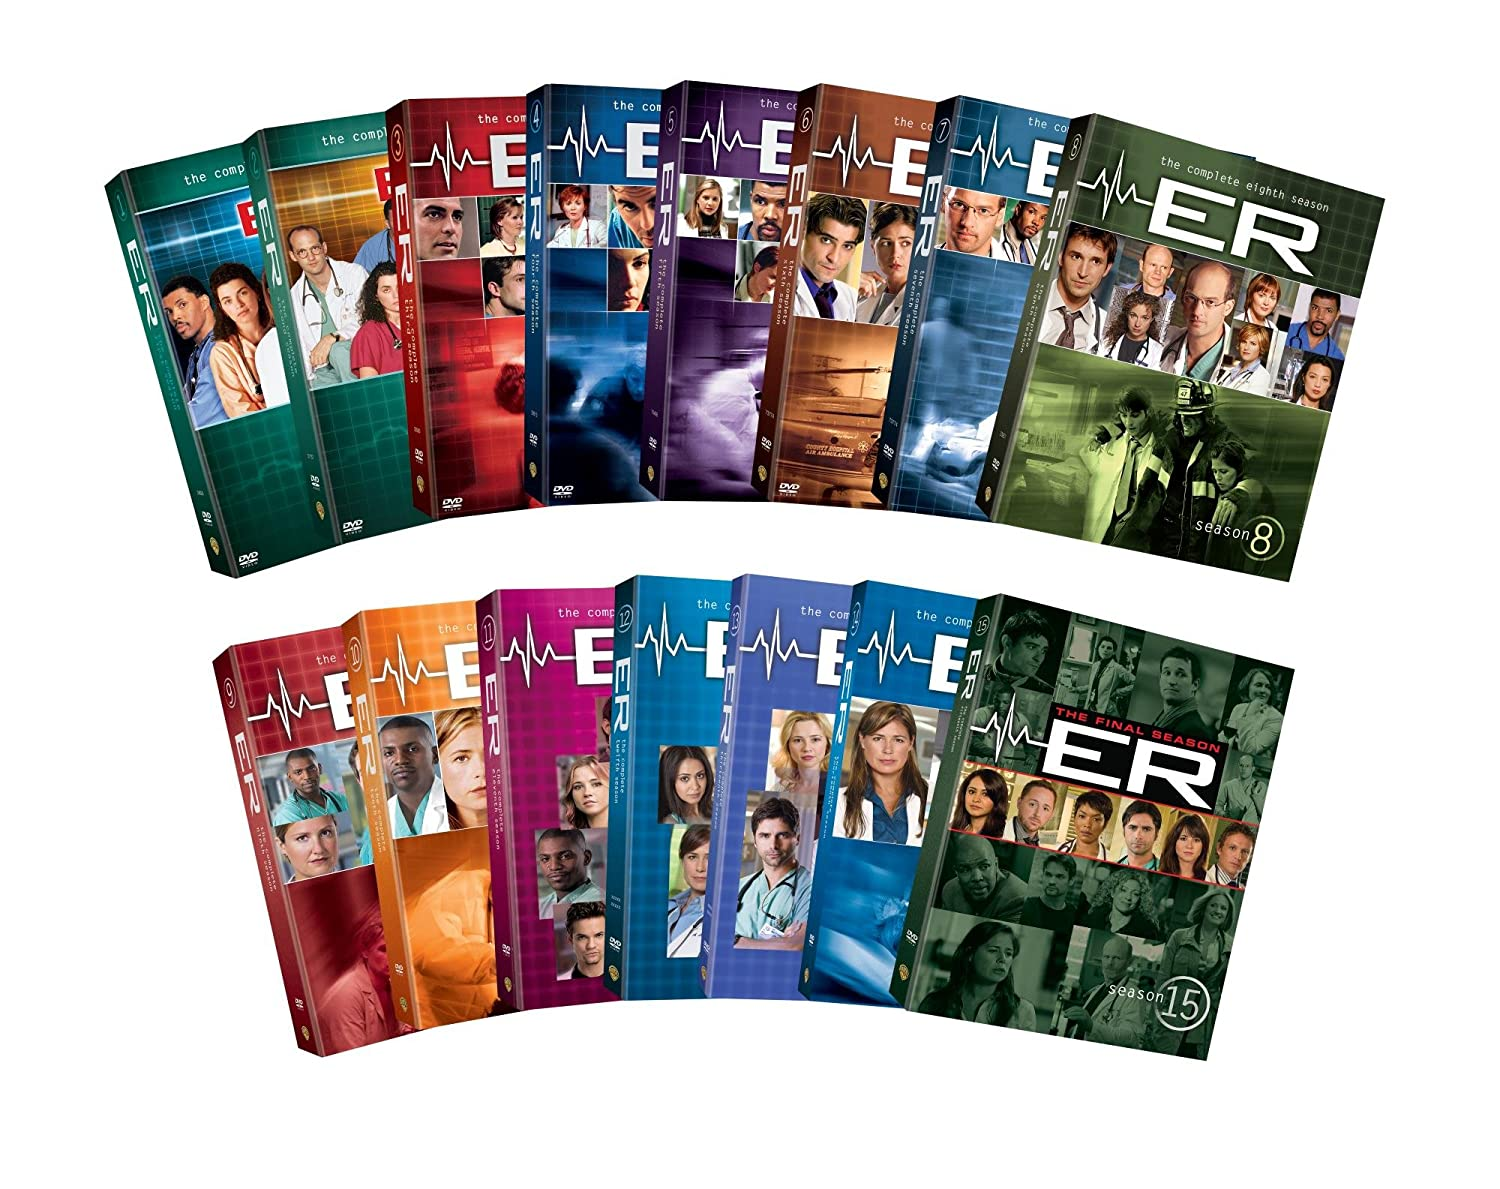 ER: The Complete Seasons 1-15 $149.11